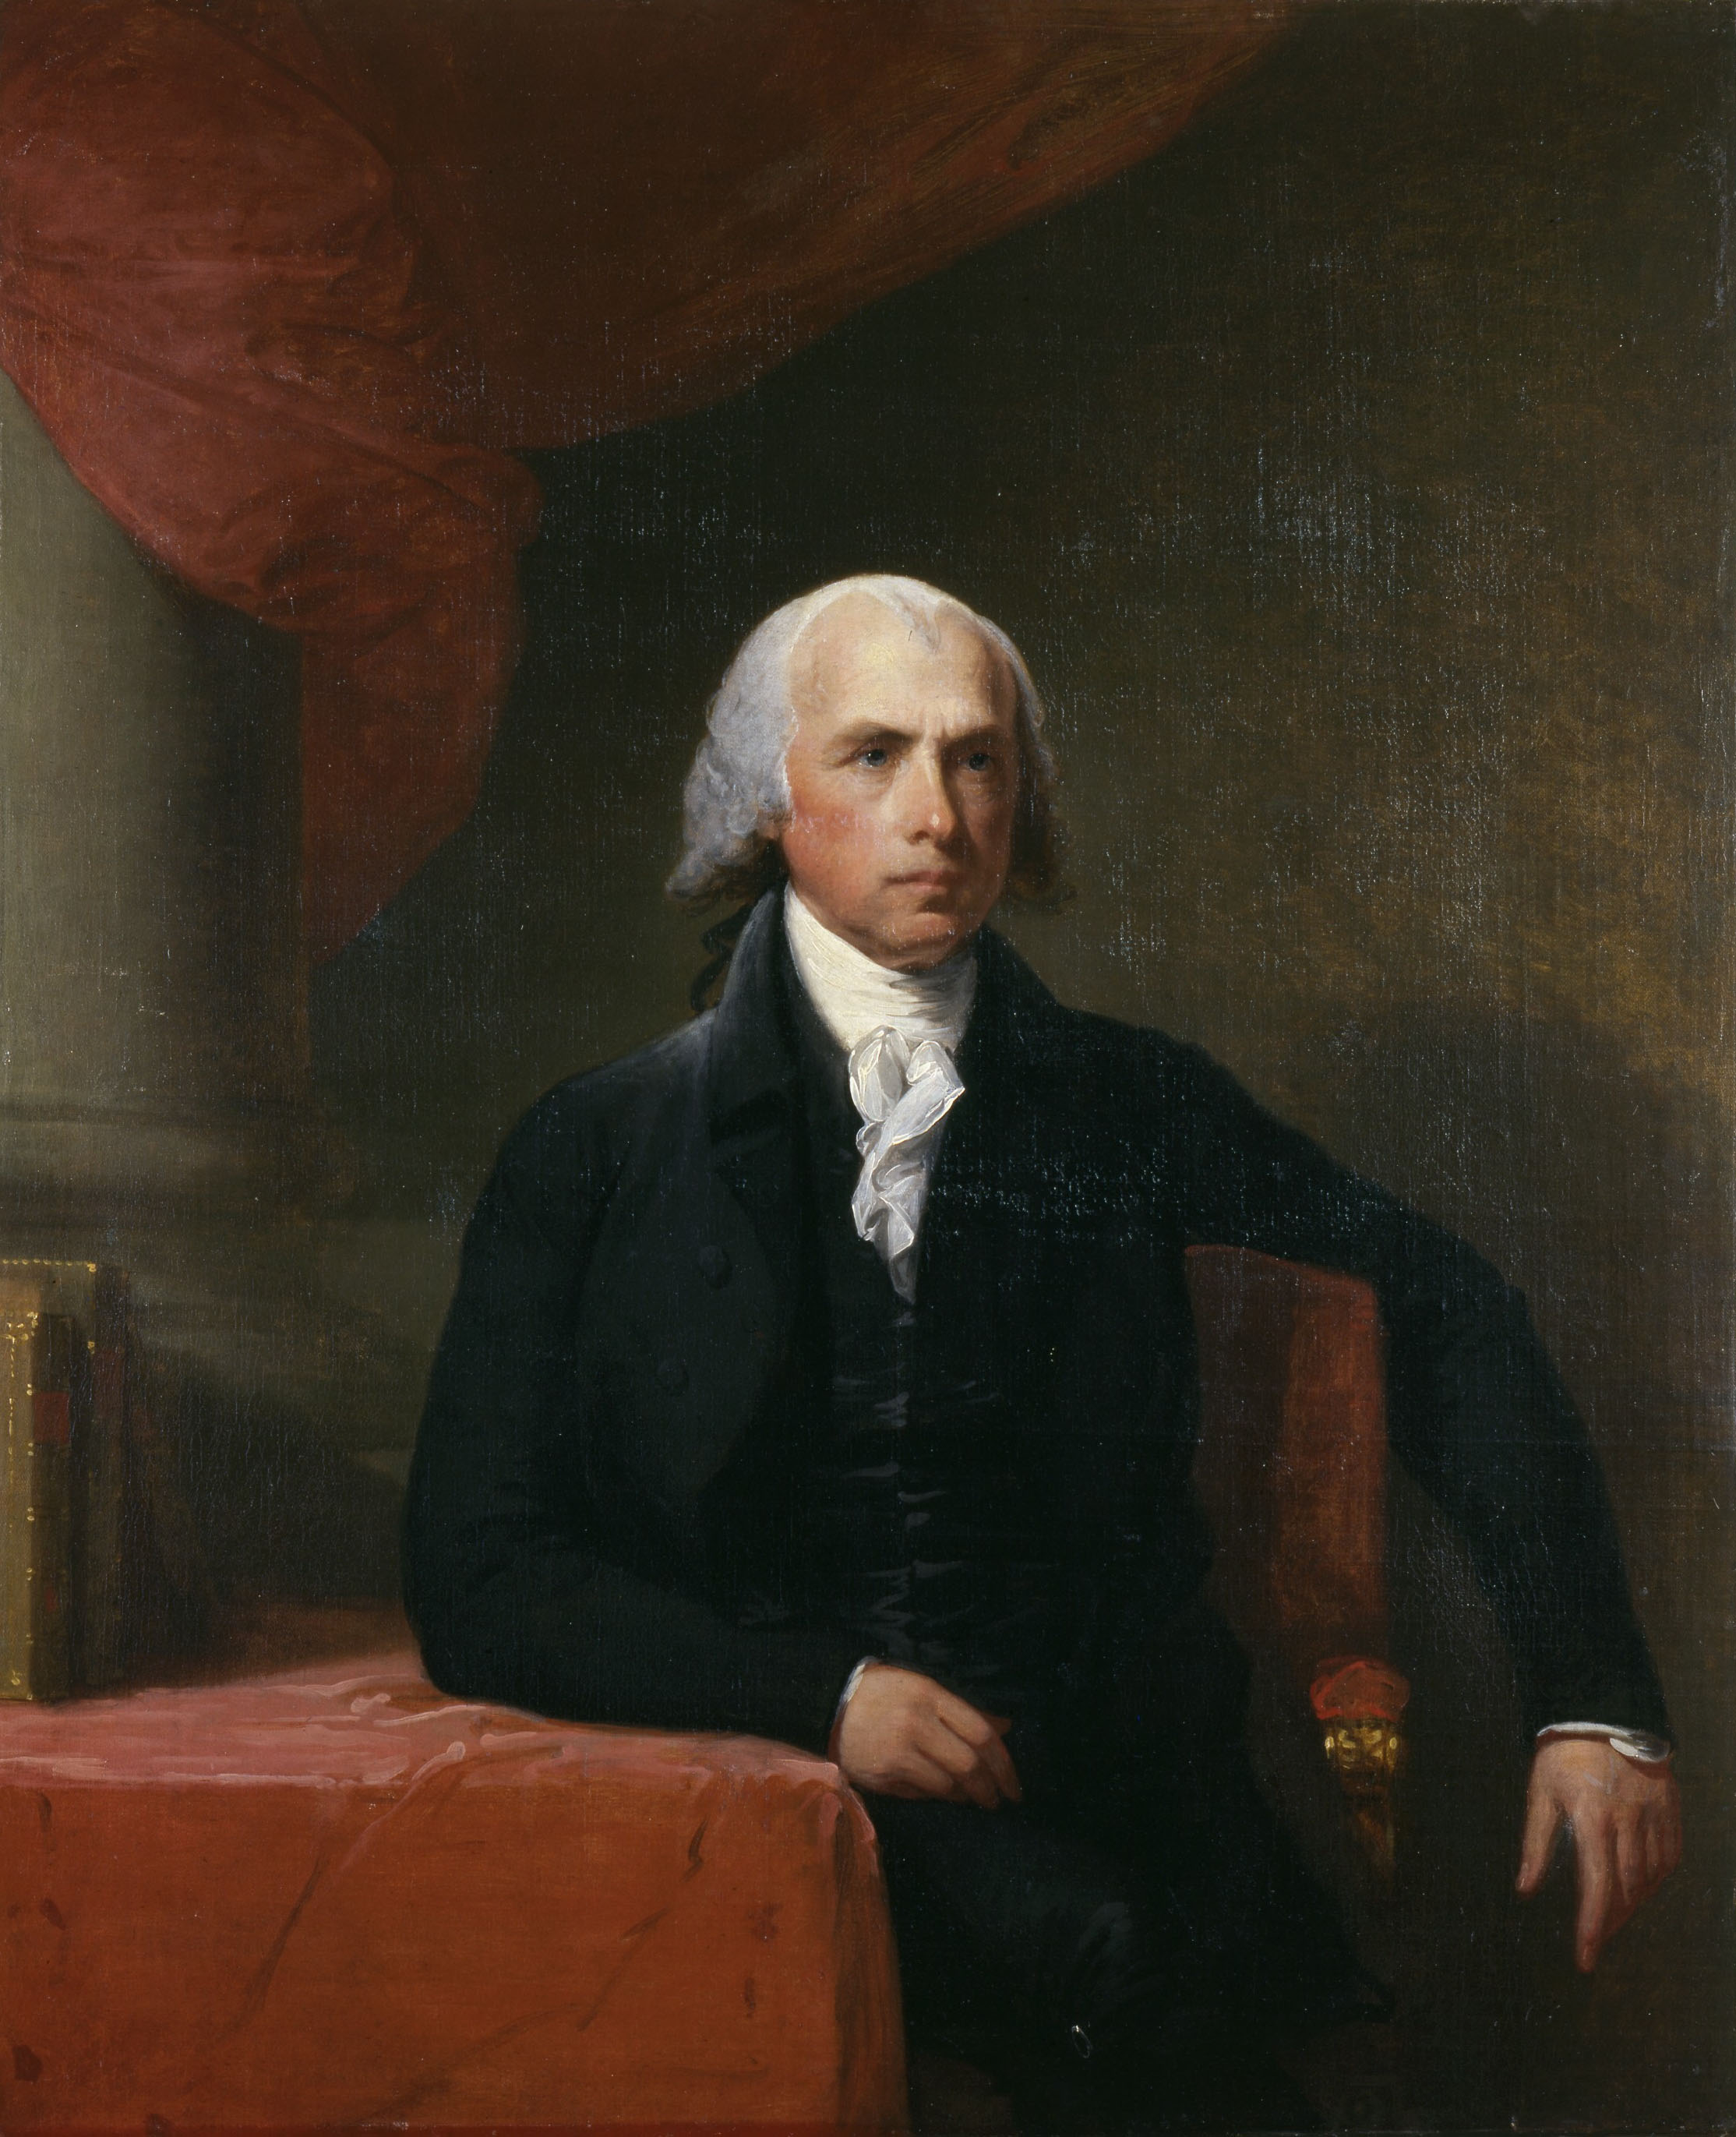 an introduction to alexander hamilton and his contributions to the constitutional convention Which only ratified the constitution at its convention on june 25, hamilton the federalist papers in constitutional introduction: alexander hamilton: 2.